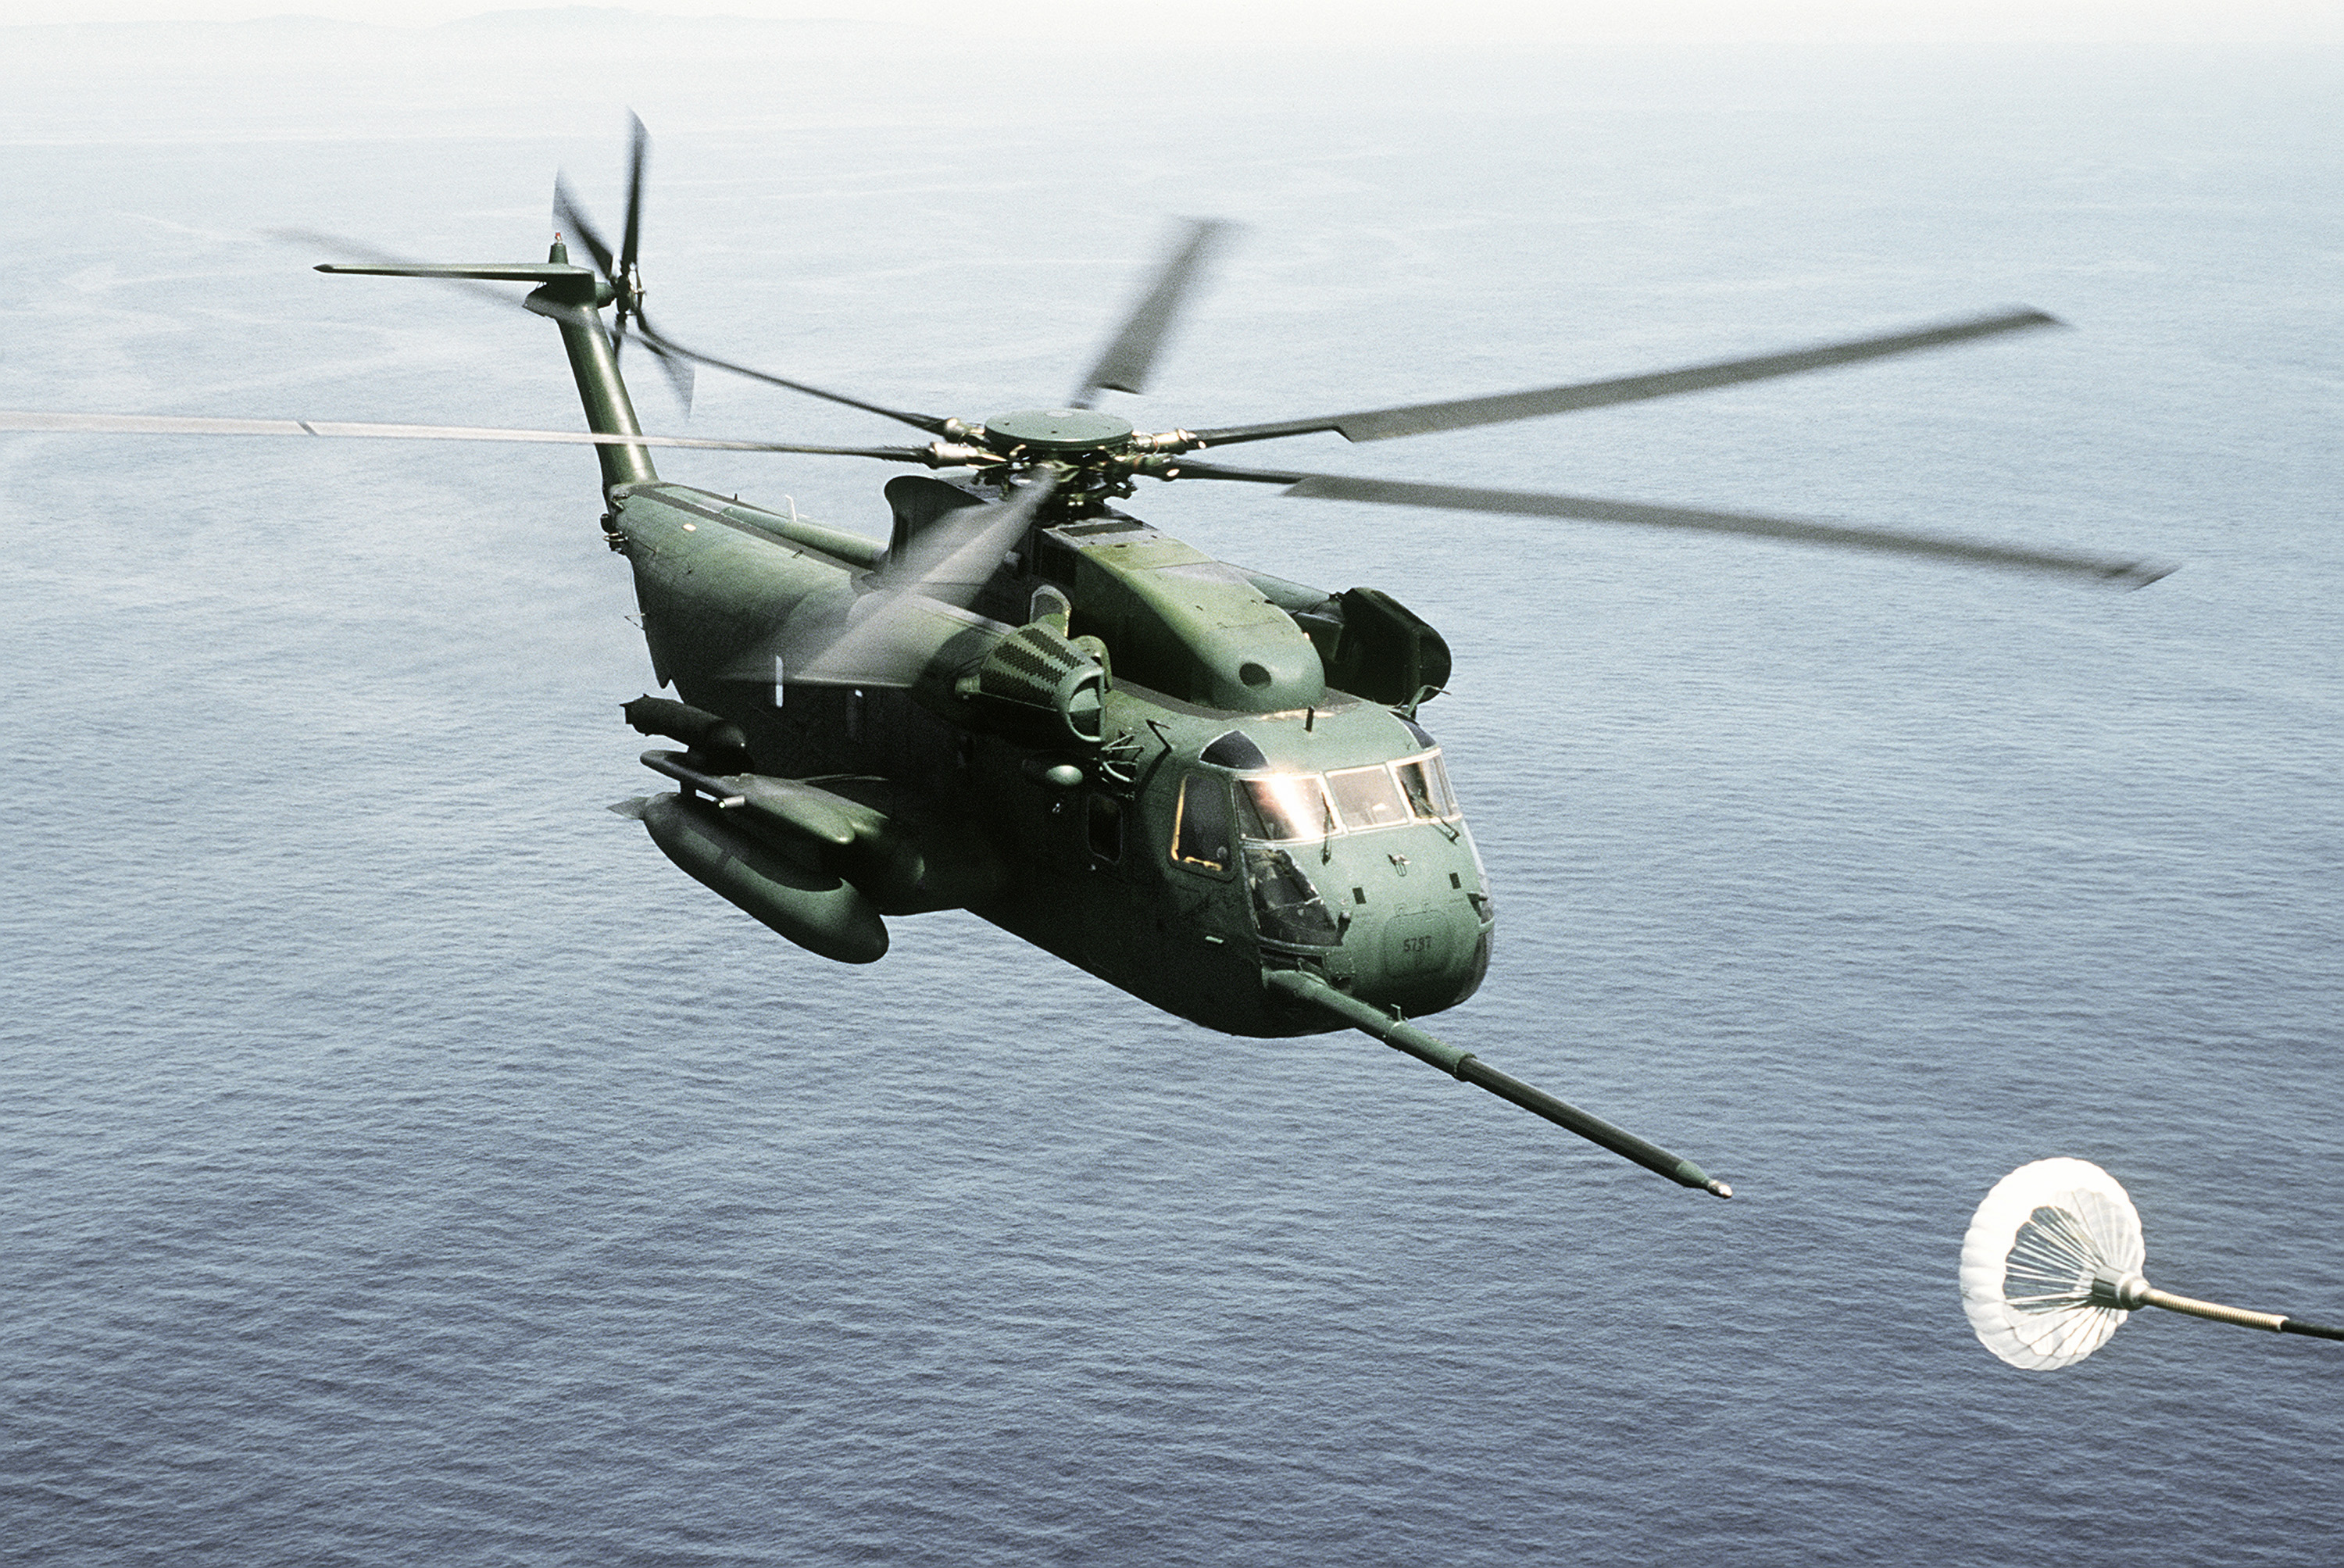 super jolly green giant helicopter with File Hh 53c 67th Arrs Approaching Tanker 1987 on File HH 53C 67th ARRS approaching tanker 1987 together with Hd Army Wallpapers Free Download besides S 65H 53D 20SEA 20STALLION besides Showthread also Super Powerful Us Military Ch 53 Military Transport Helicopter Aircraft.